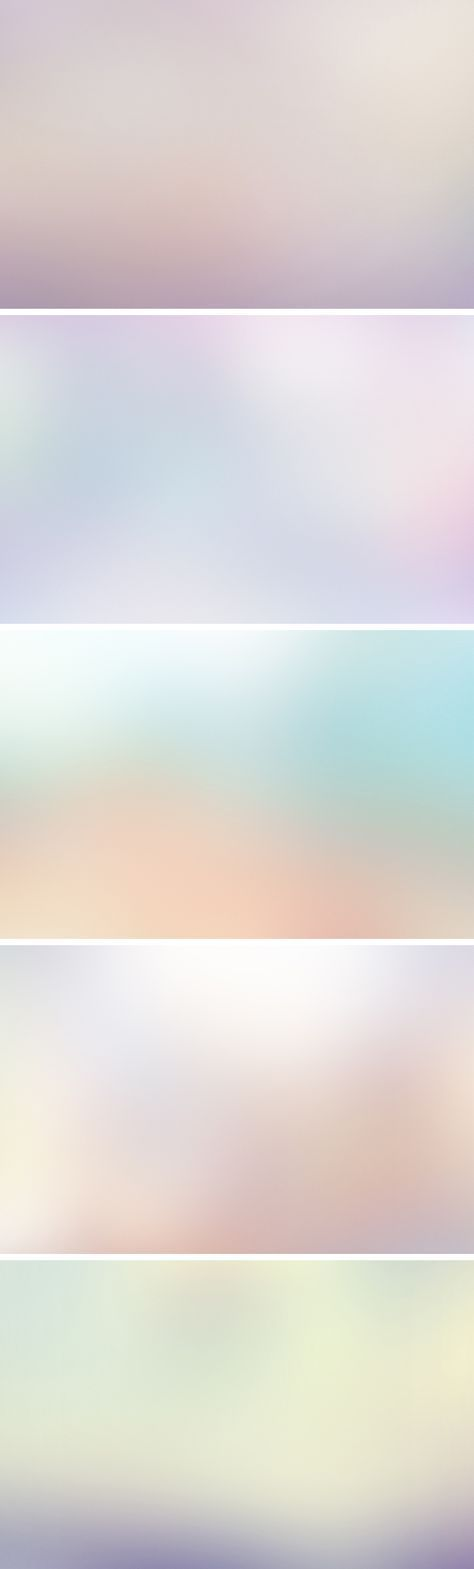 The second volume of blurred backgrounds is now available for download! These images will look great as backgrounds for...